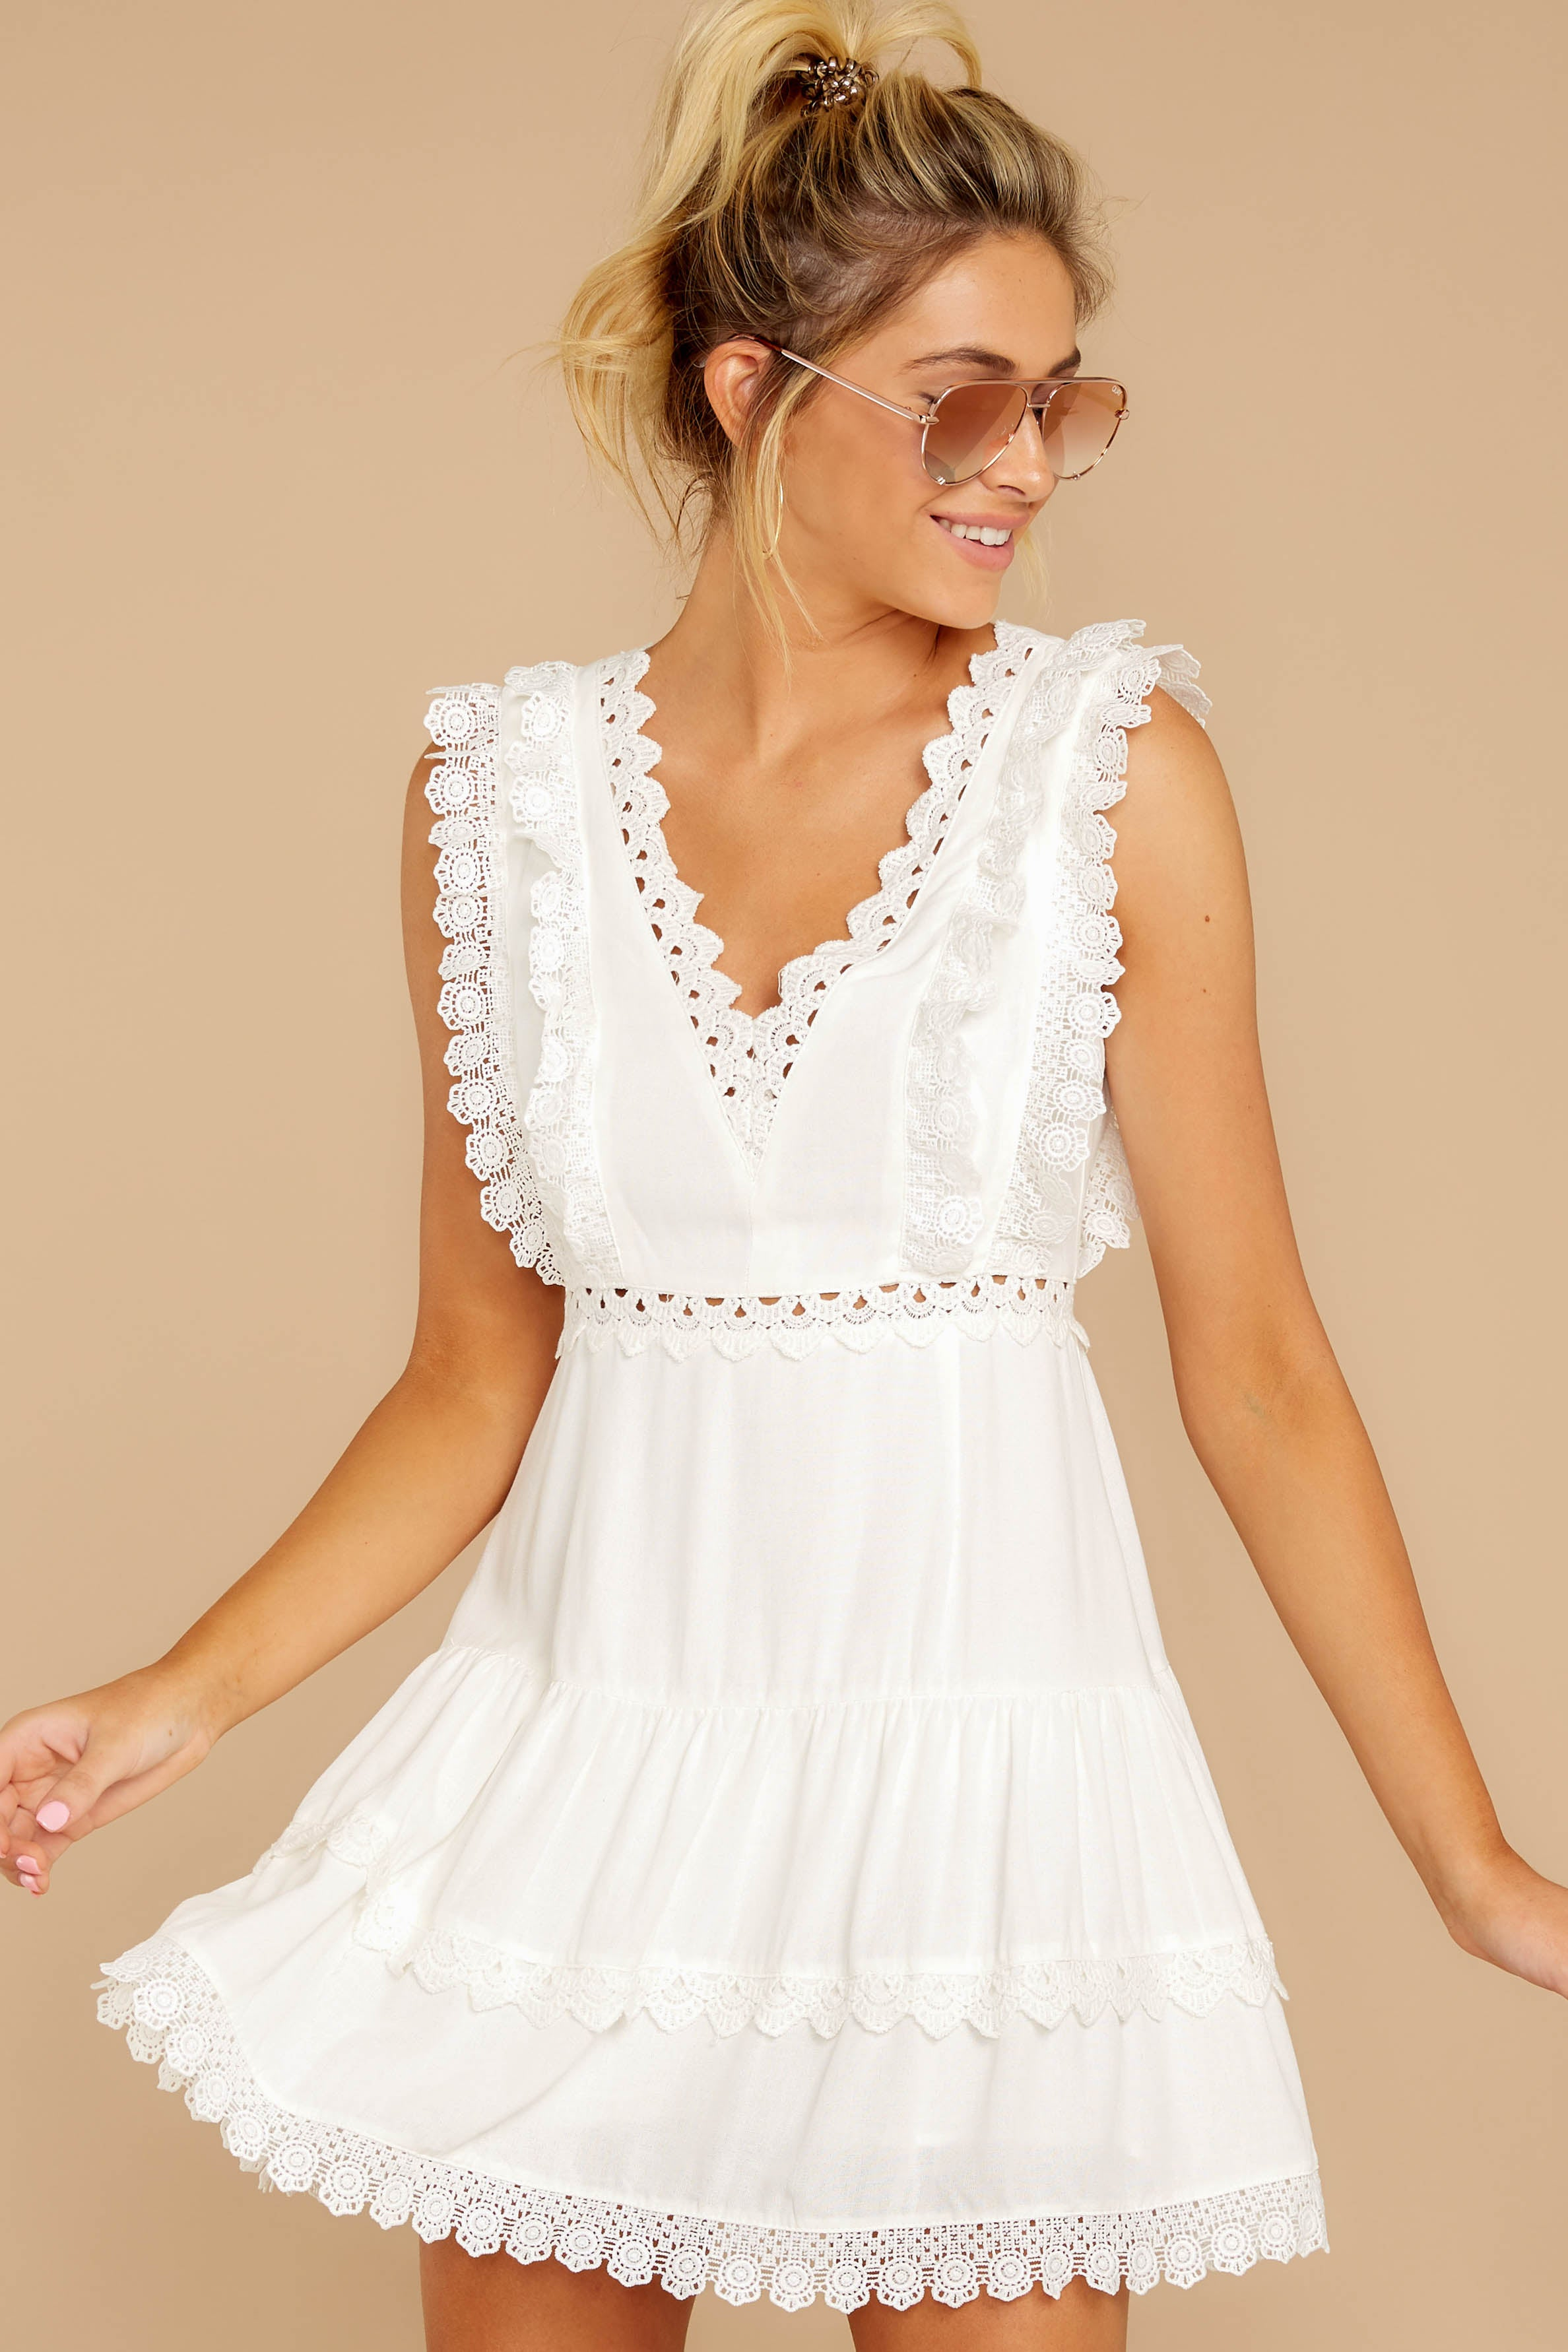 5 Looking For More White Dress at reddress.com